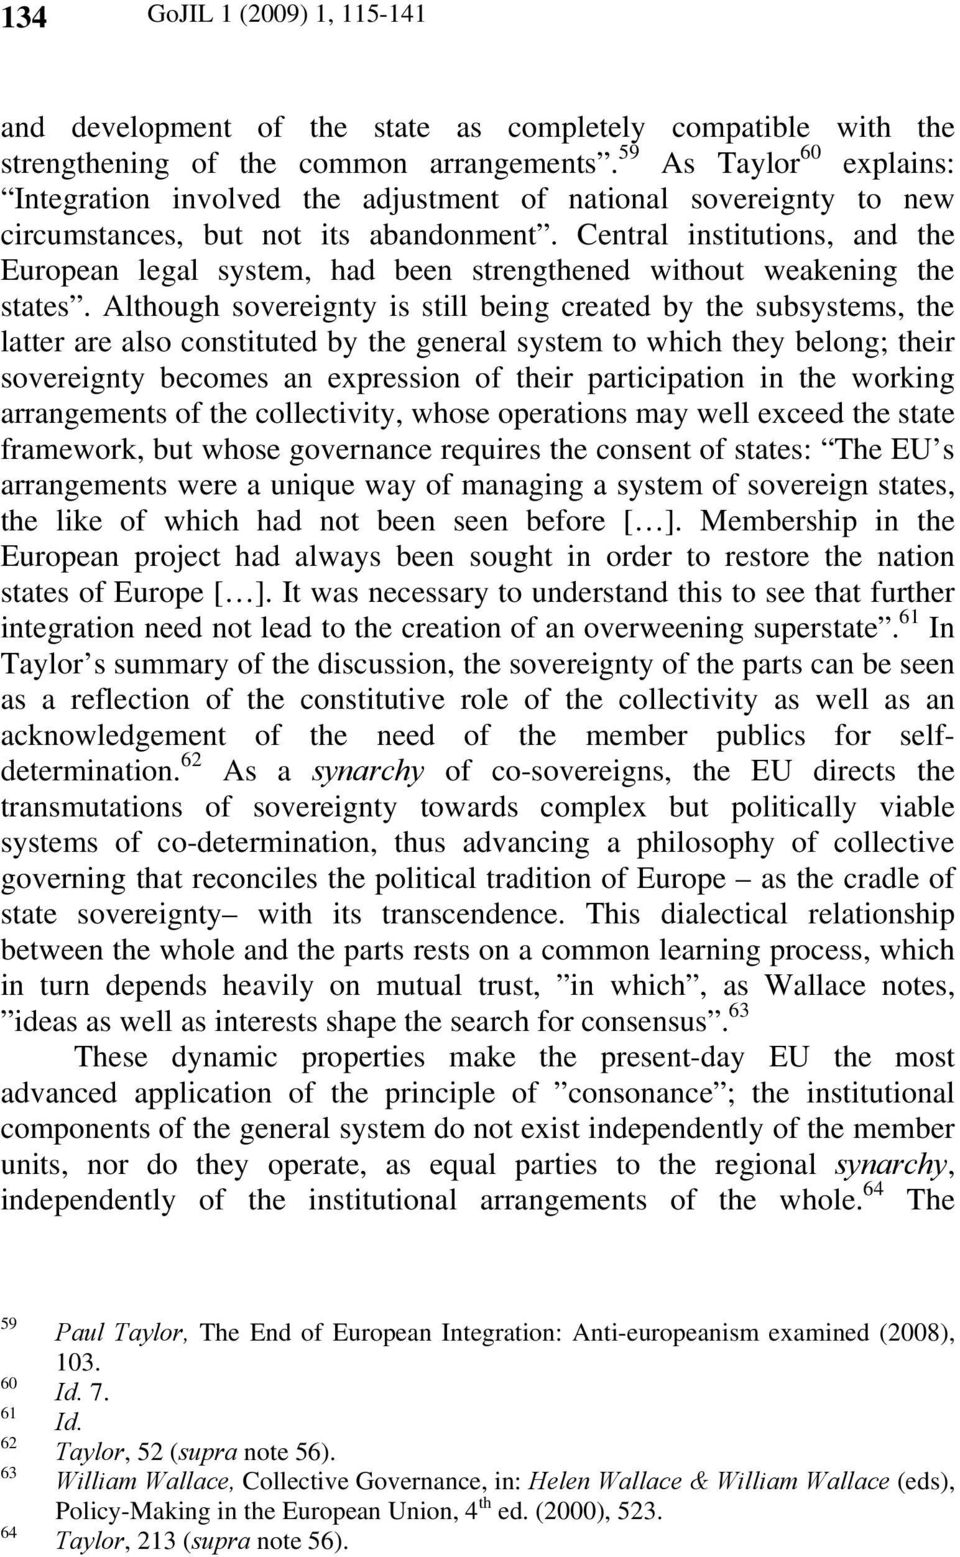 Central institutions, and the European legal system, had been strengthened without weakening the states.